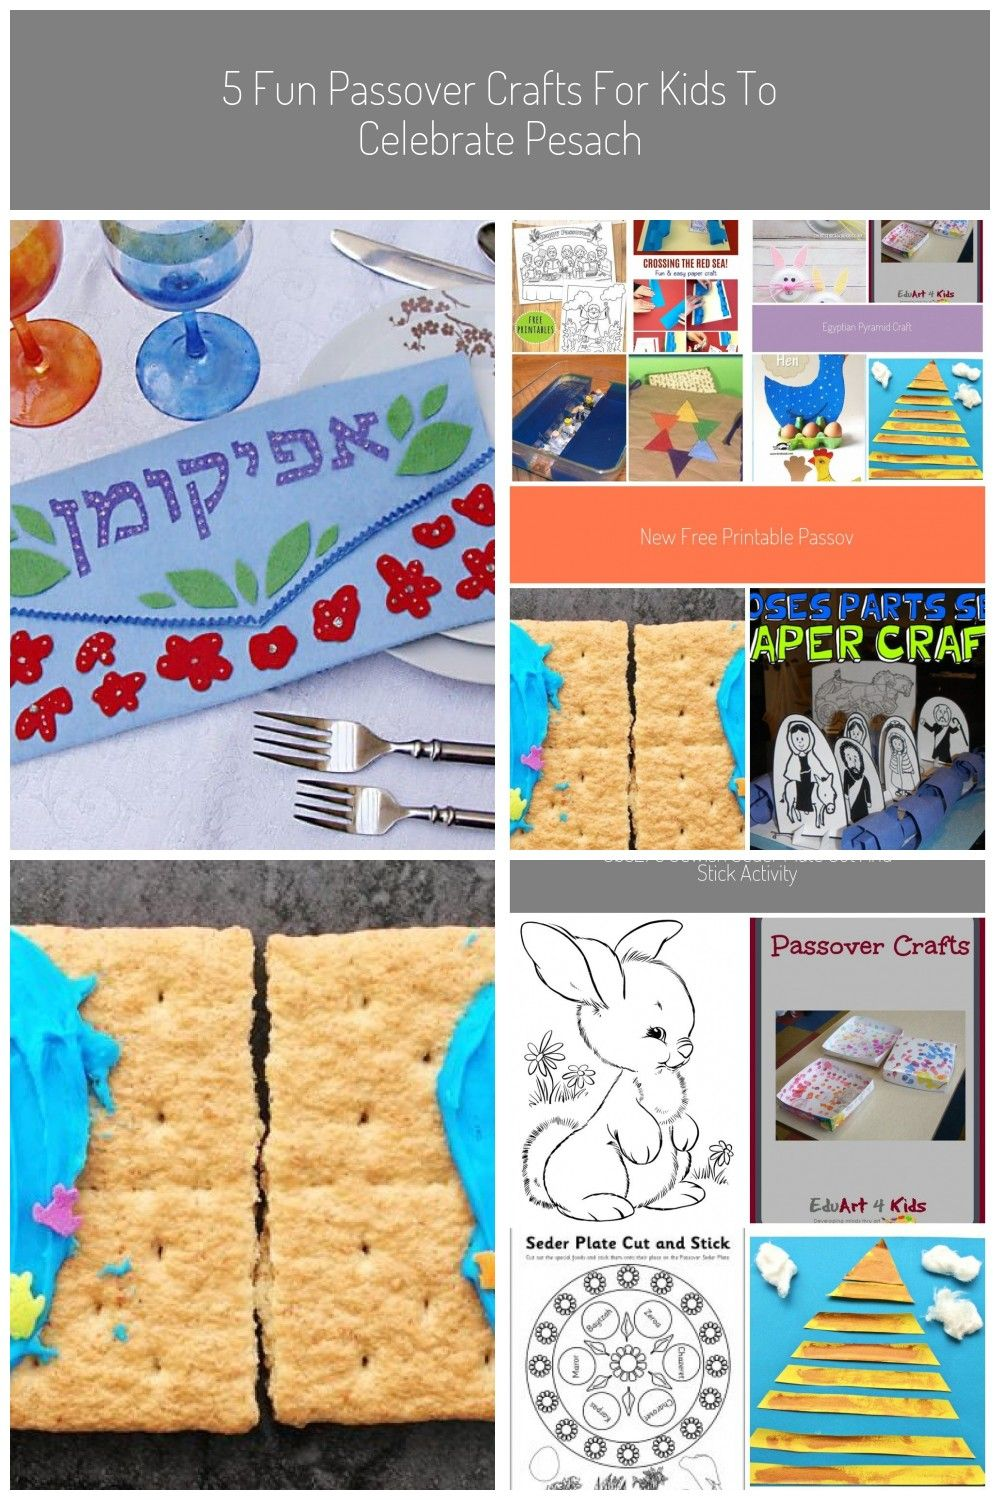 5 Fun Passover Crafts For Kids To Celebrate Pesach In 2020 Passover Crafts Crafts For Kids Bookmarks Kids